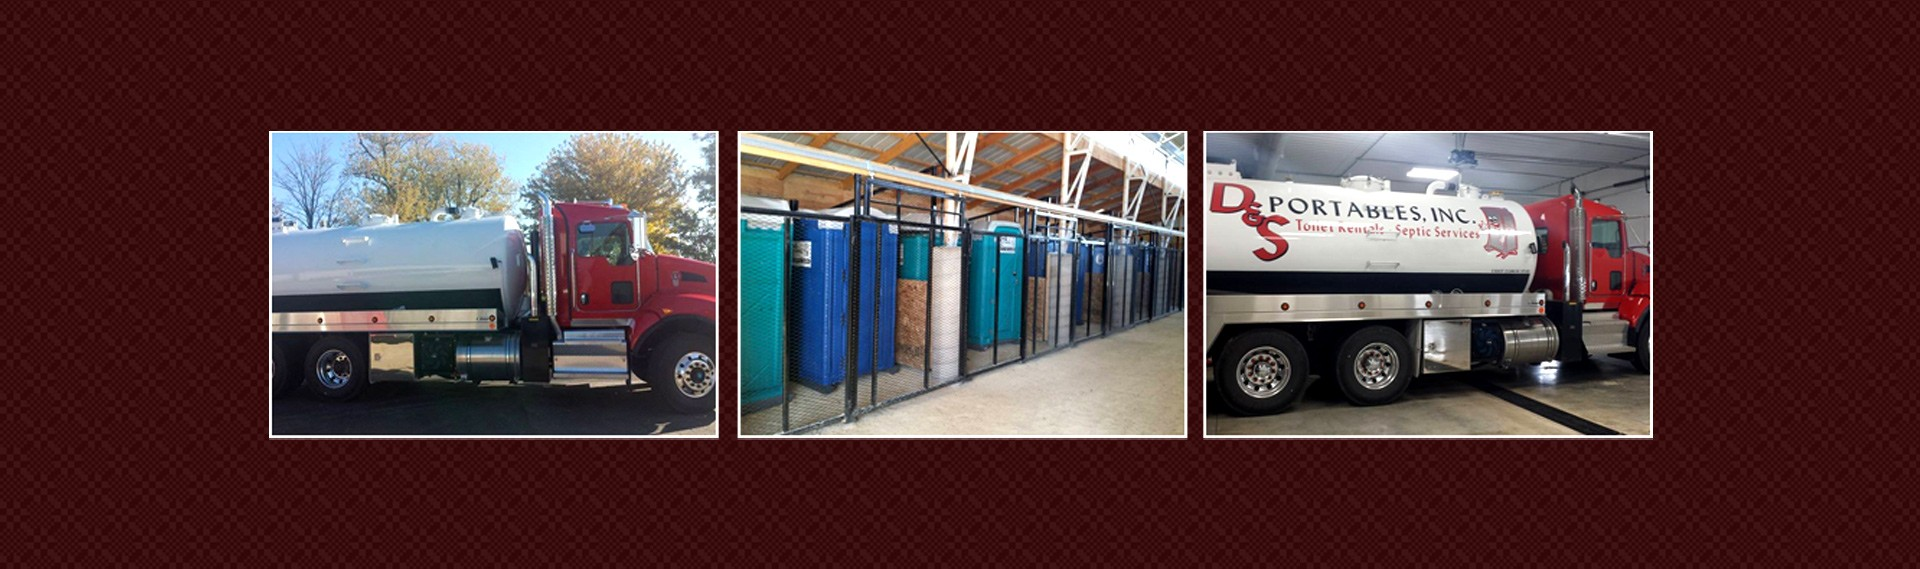 Septic Tank Truck and Portable Toilets